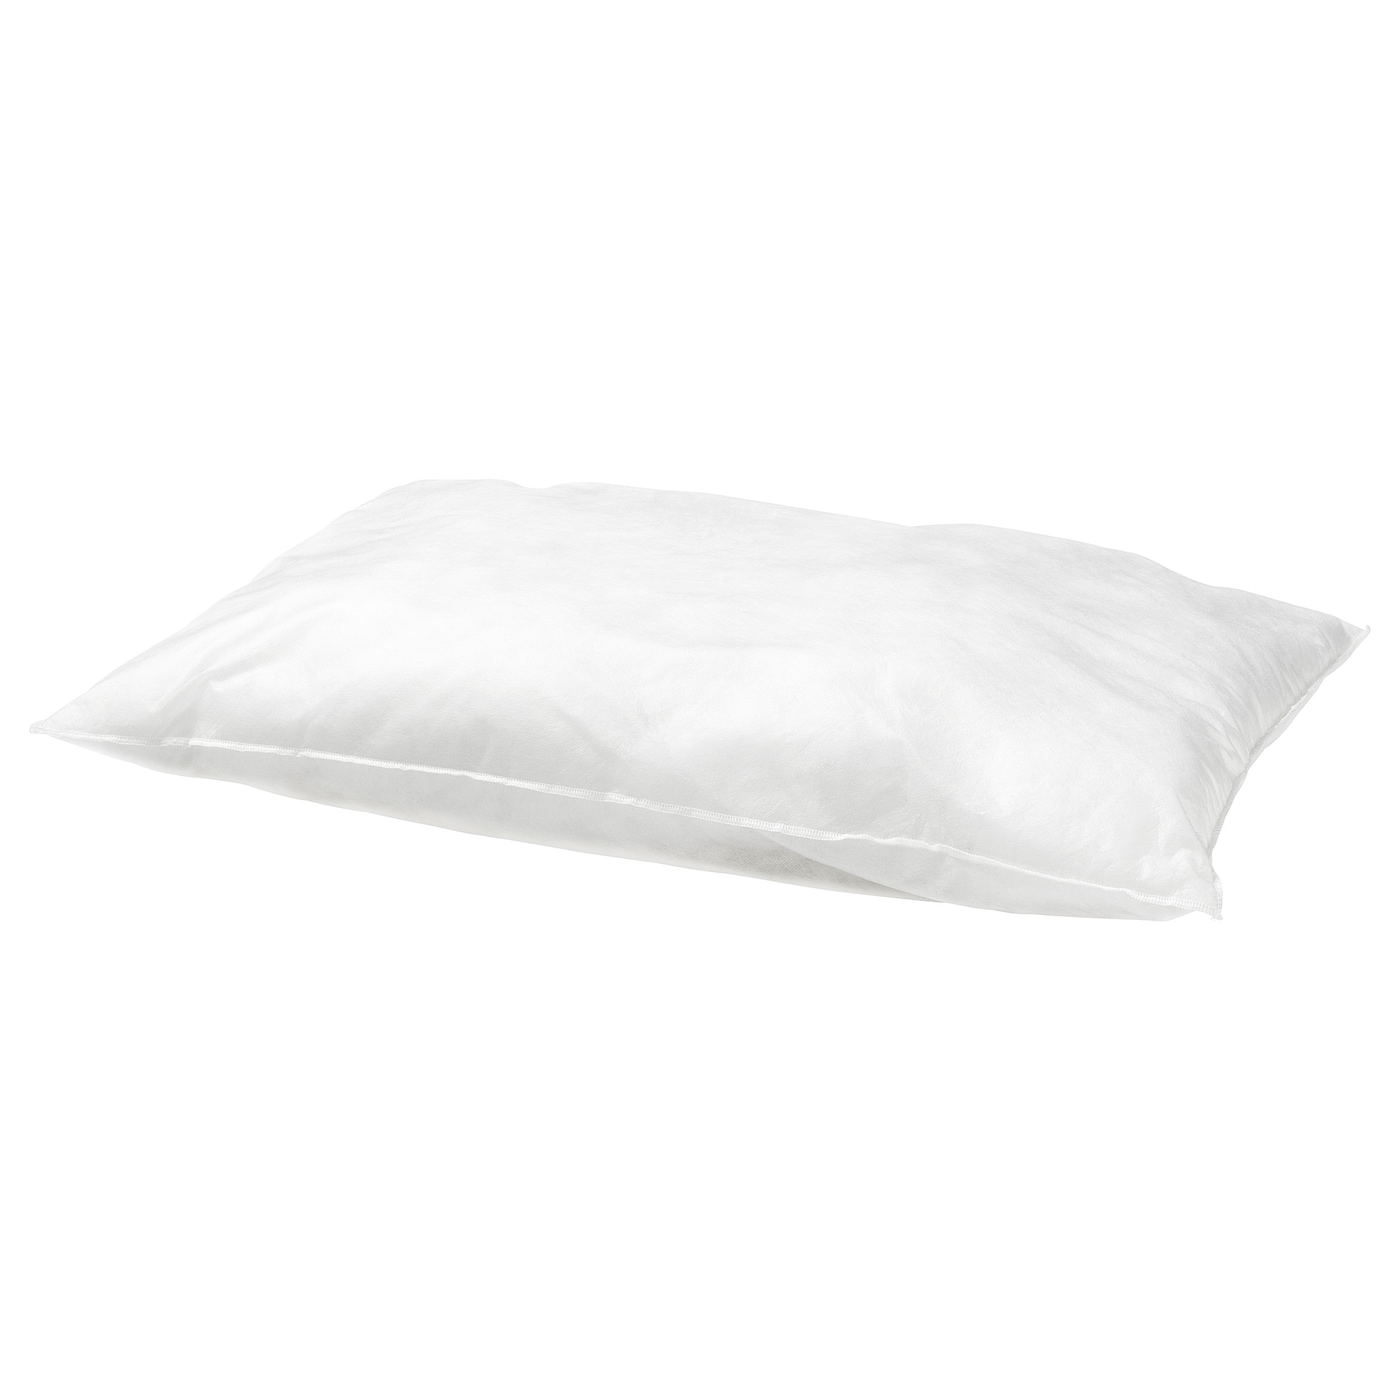 IKEA SLÅN pillow, softer A soft, easy-care pillow with polypropylene fabric and polyester filling.